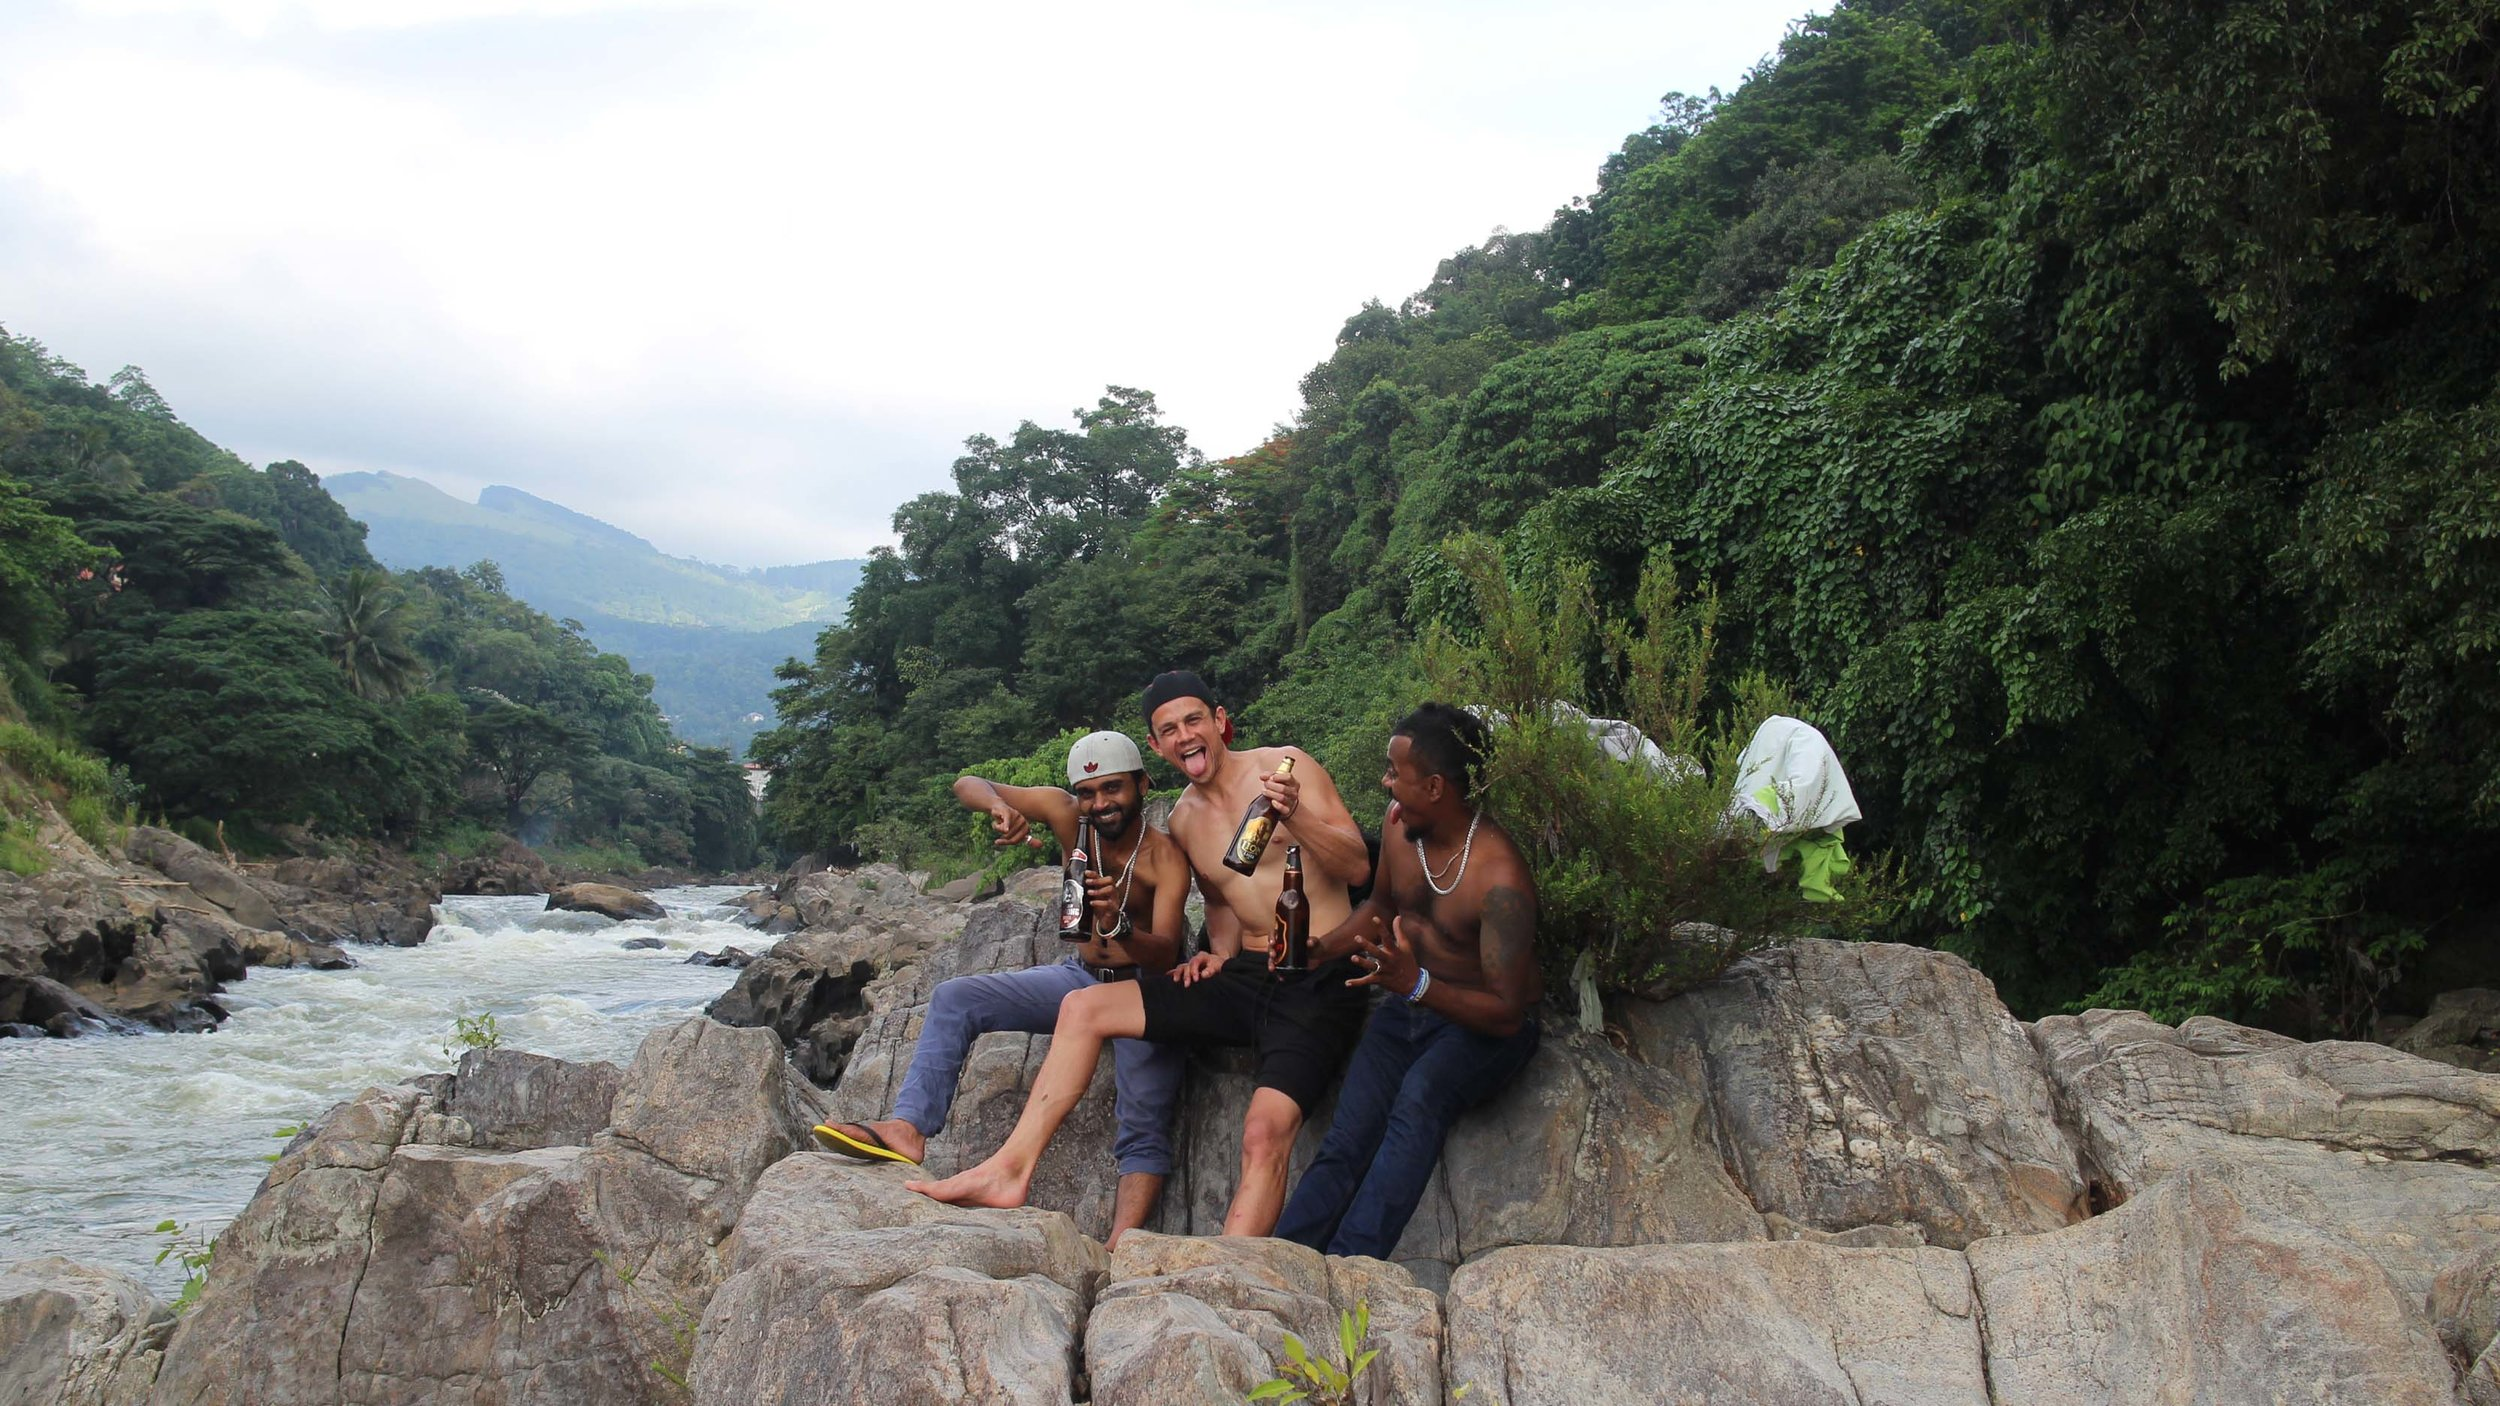 Saapu, Me & Chana drinking by a river somewhere in Kandy.